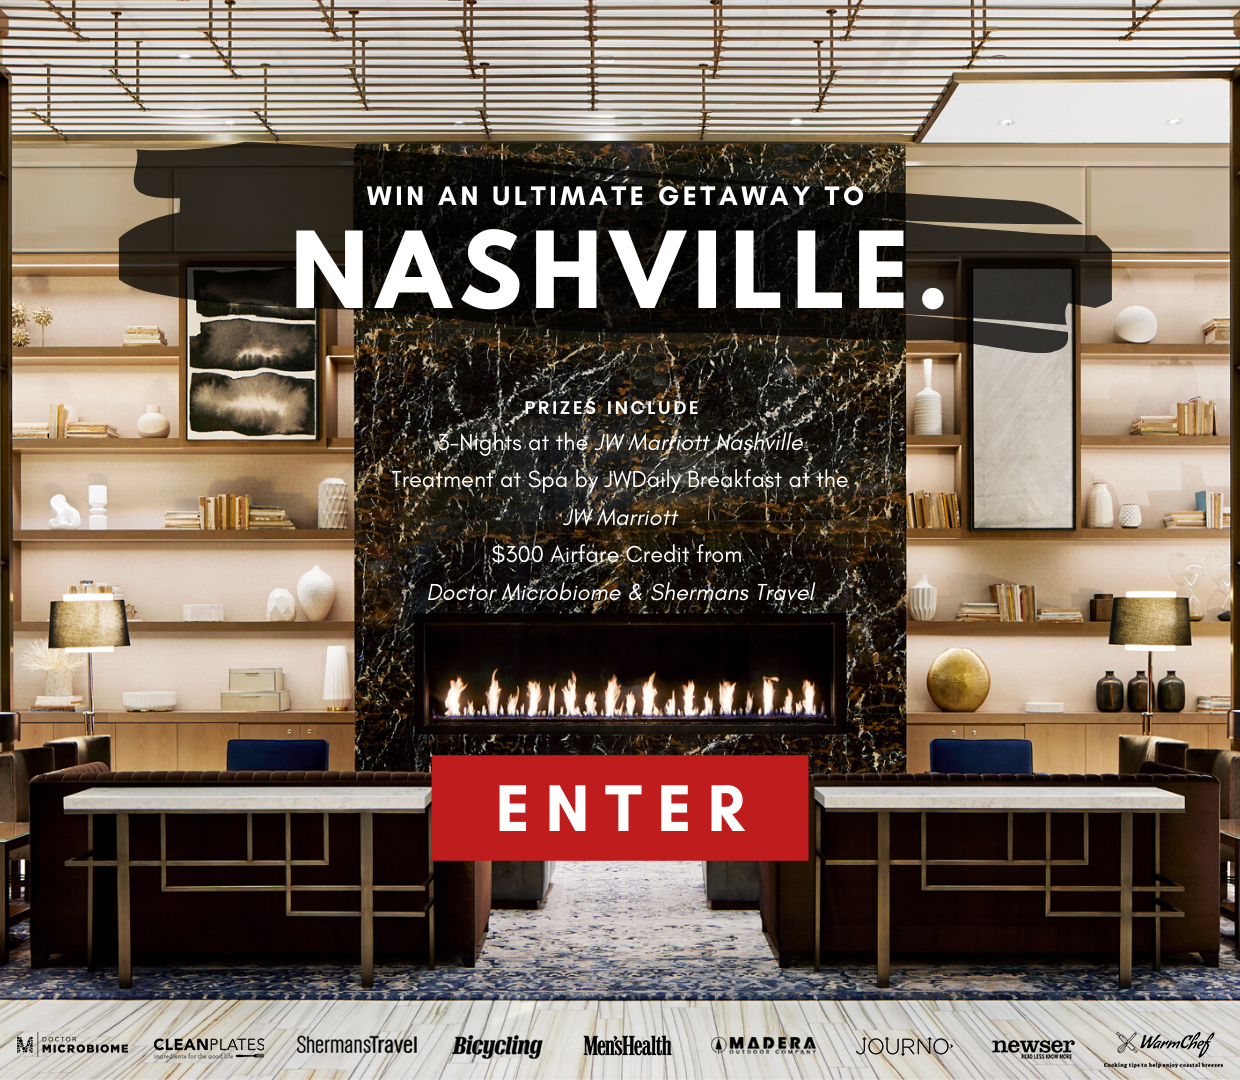 Enter for a chance to win: Three nights at the JW Marriott Nashville, a spa treatment at Spa by JW, daily Breakfast at the JW Marriott, and $300 Airfare Credit (total) from Doctor Microbiome and Shermans Travel. Enter now!